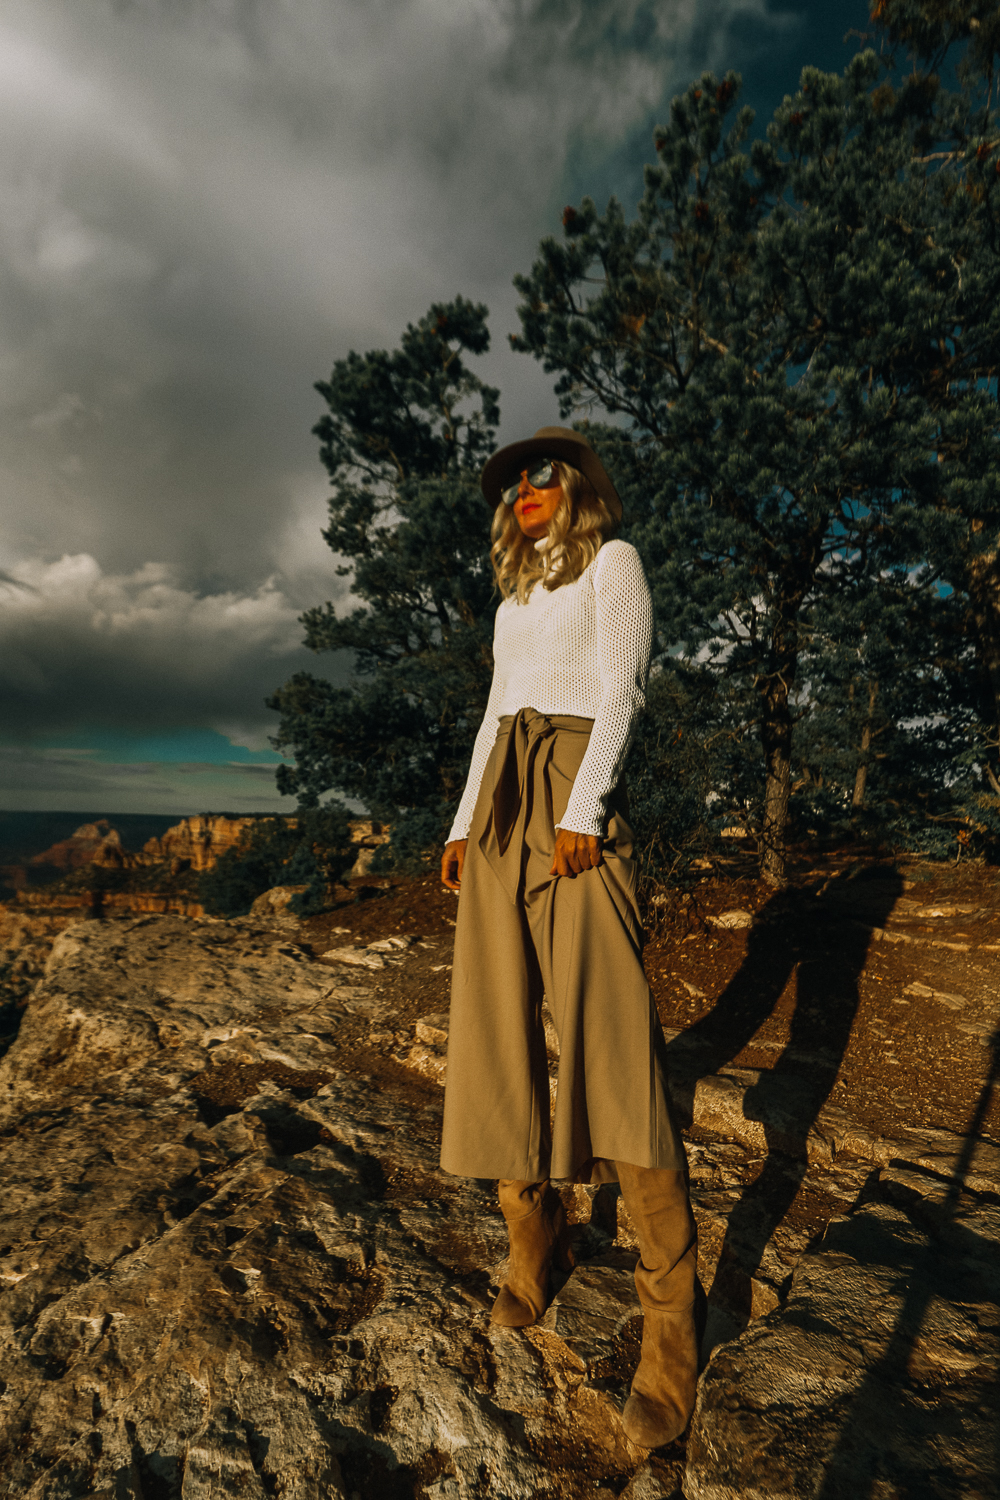 Grand Canyon Rim Trail featuring fashion blogger Erin Busbee of BusbeeStyle.com wearing camel culottes, white turtleneck and a brown hat